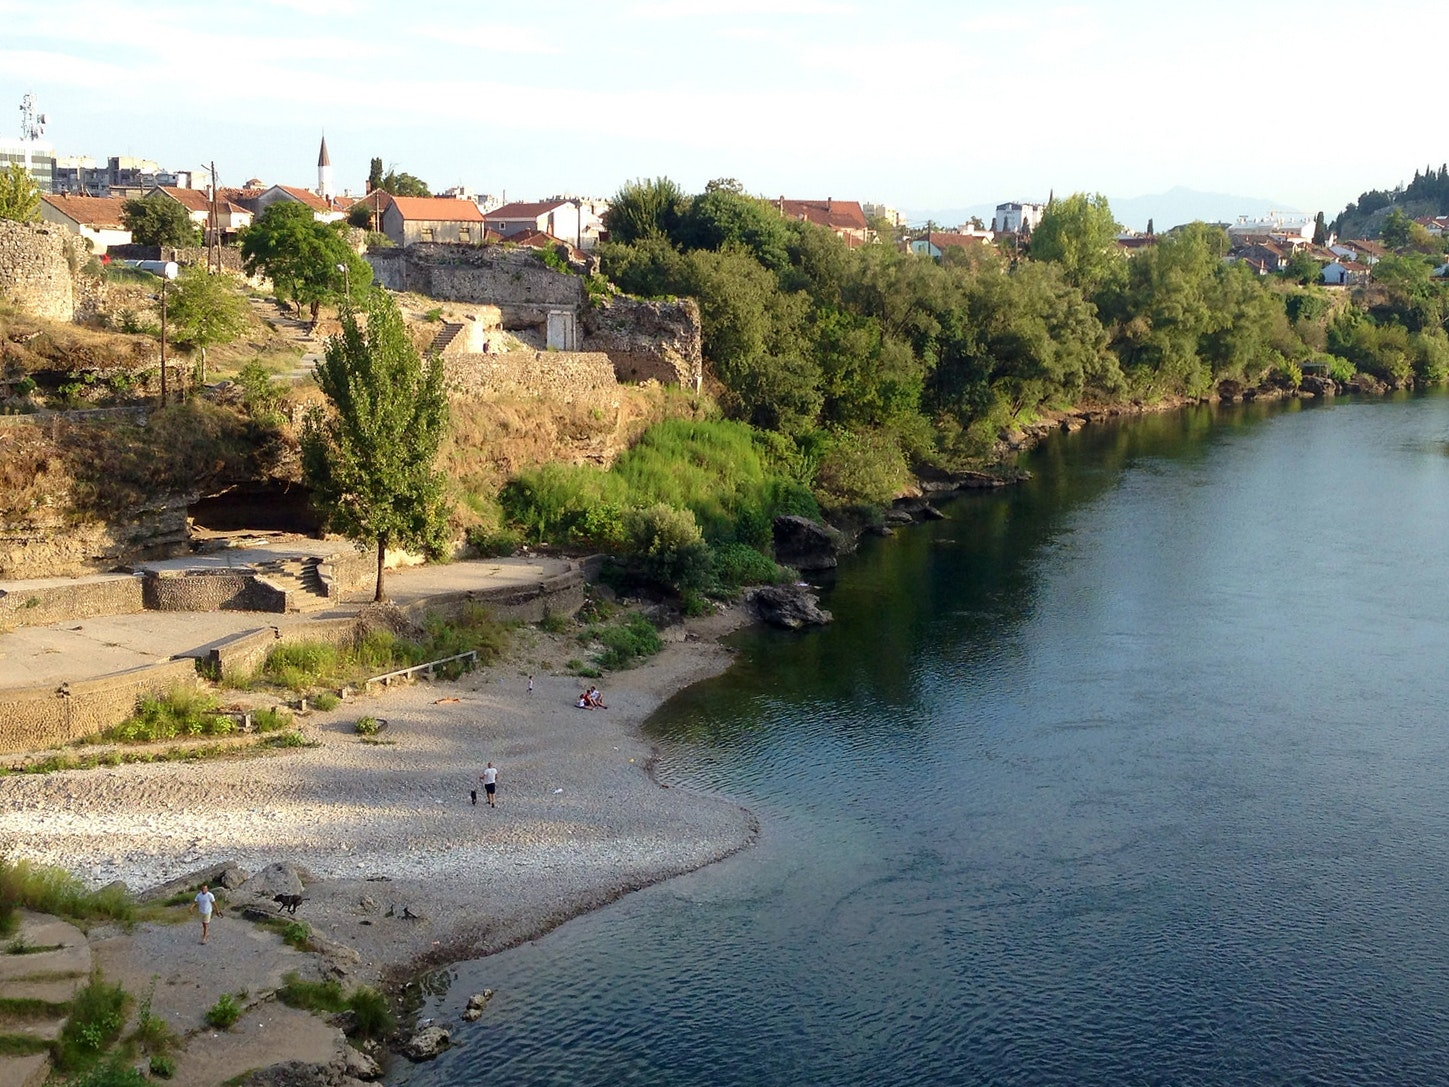 View of the Moraca River